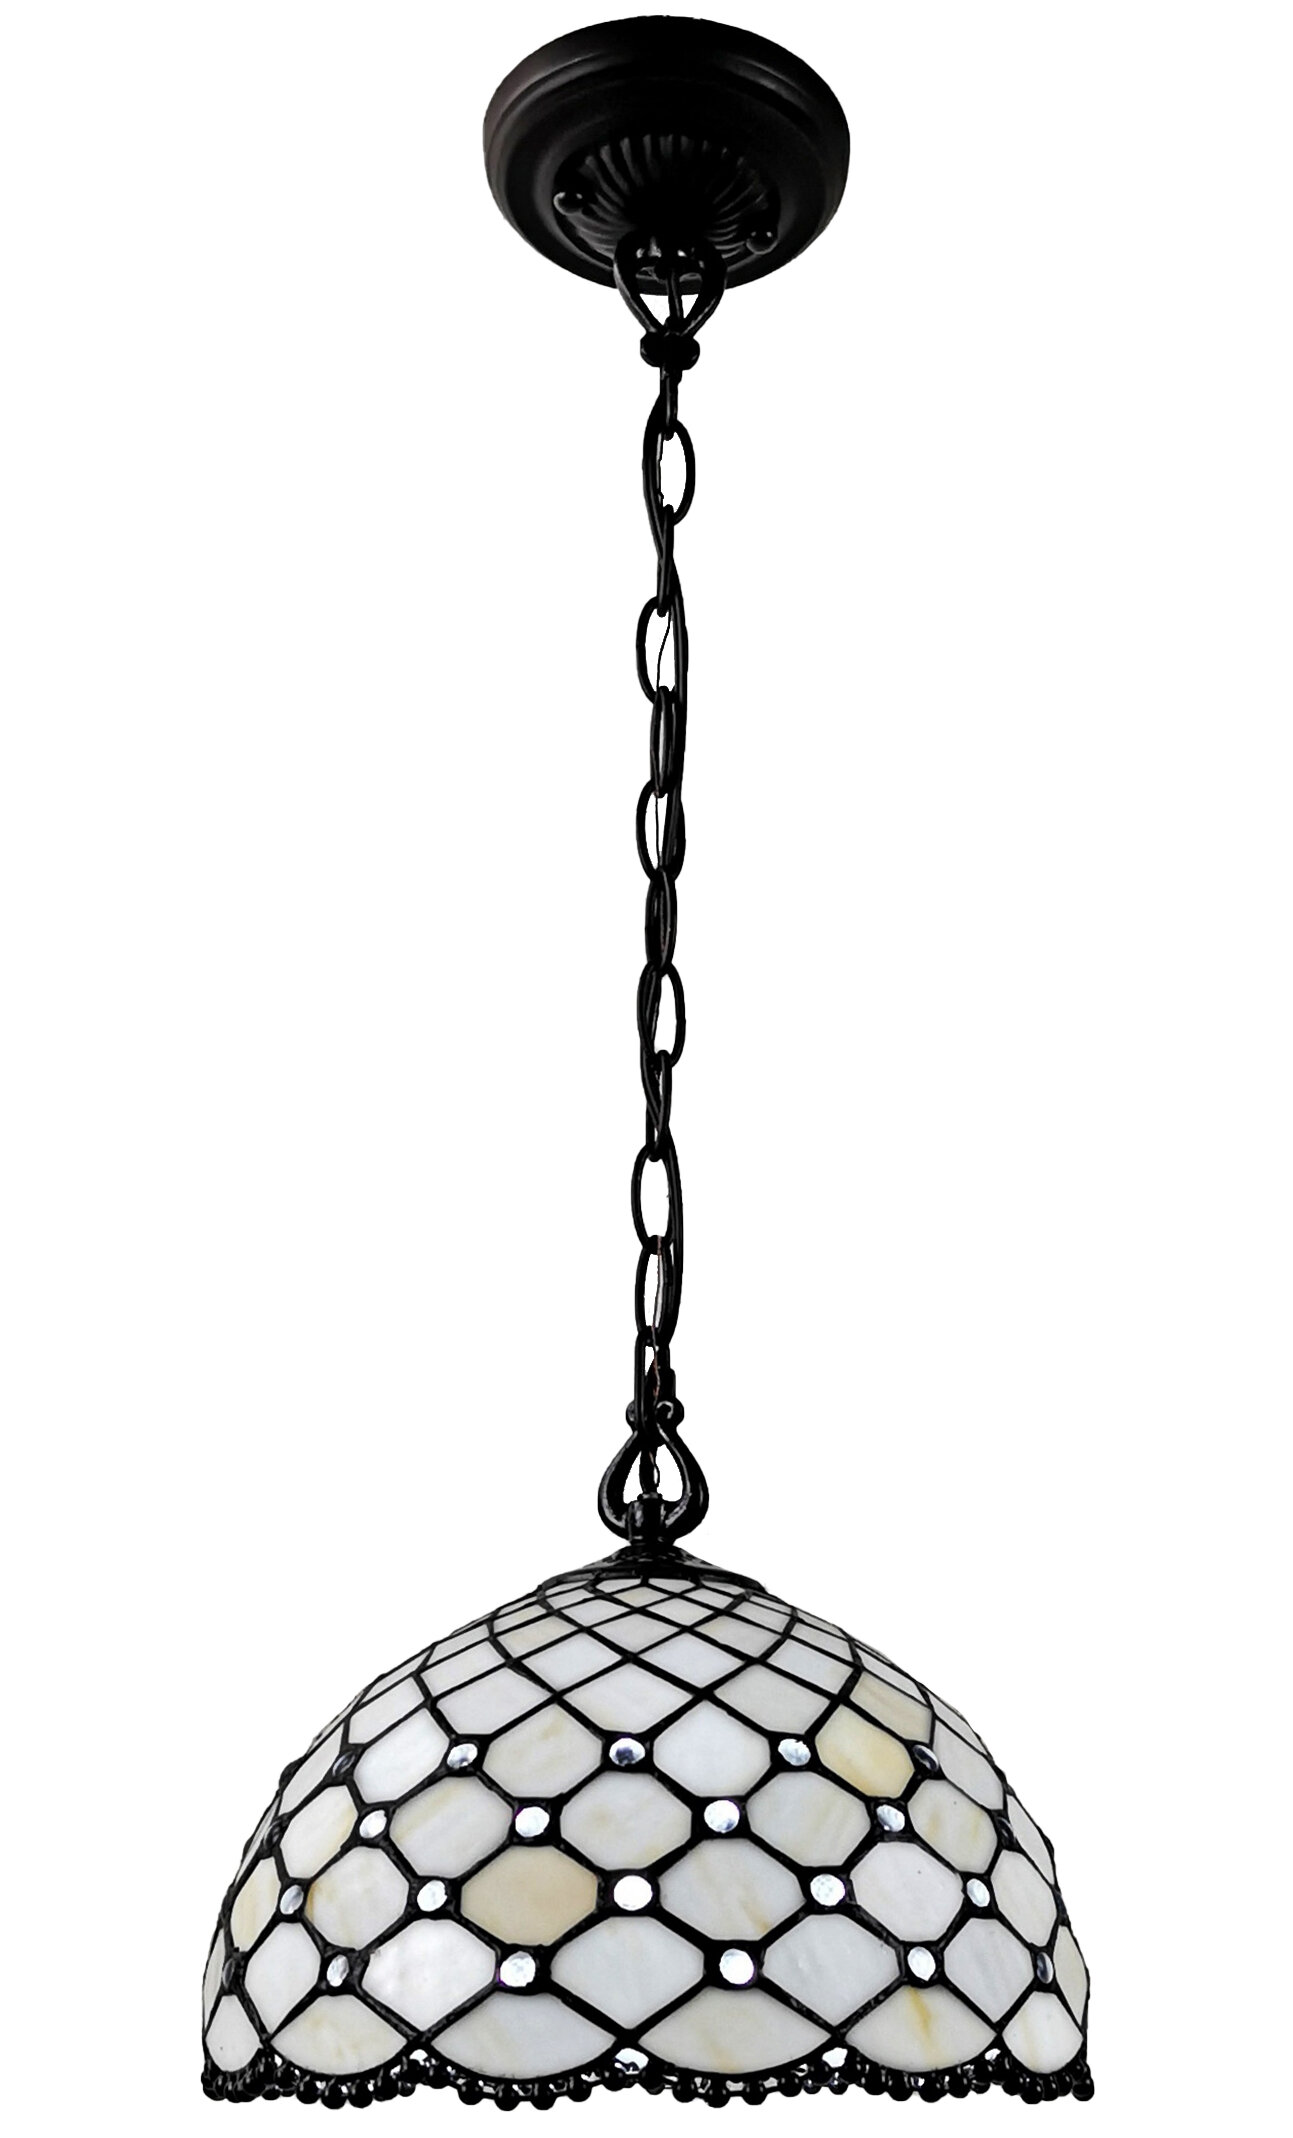 August Grove 3dfb2c6cca674bb8b5294d79f9b56bfa Tiffany Style Hanging Pendant Ceiling Lamp 12 Wide Stained Glass White Jeweled Antique Vintage Light